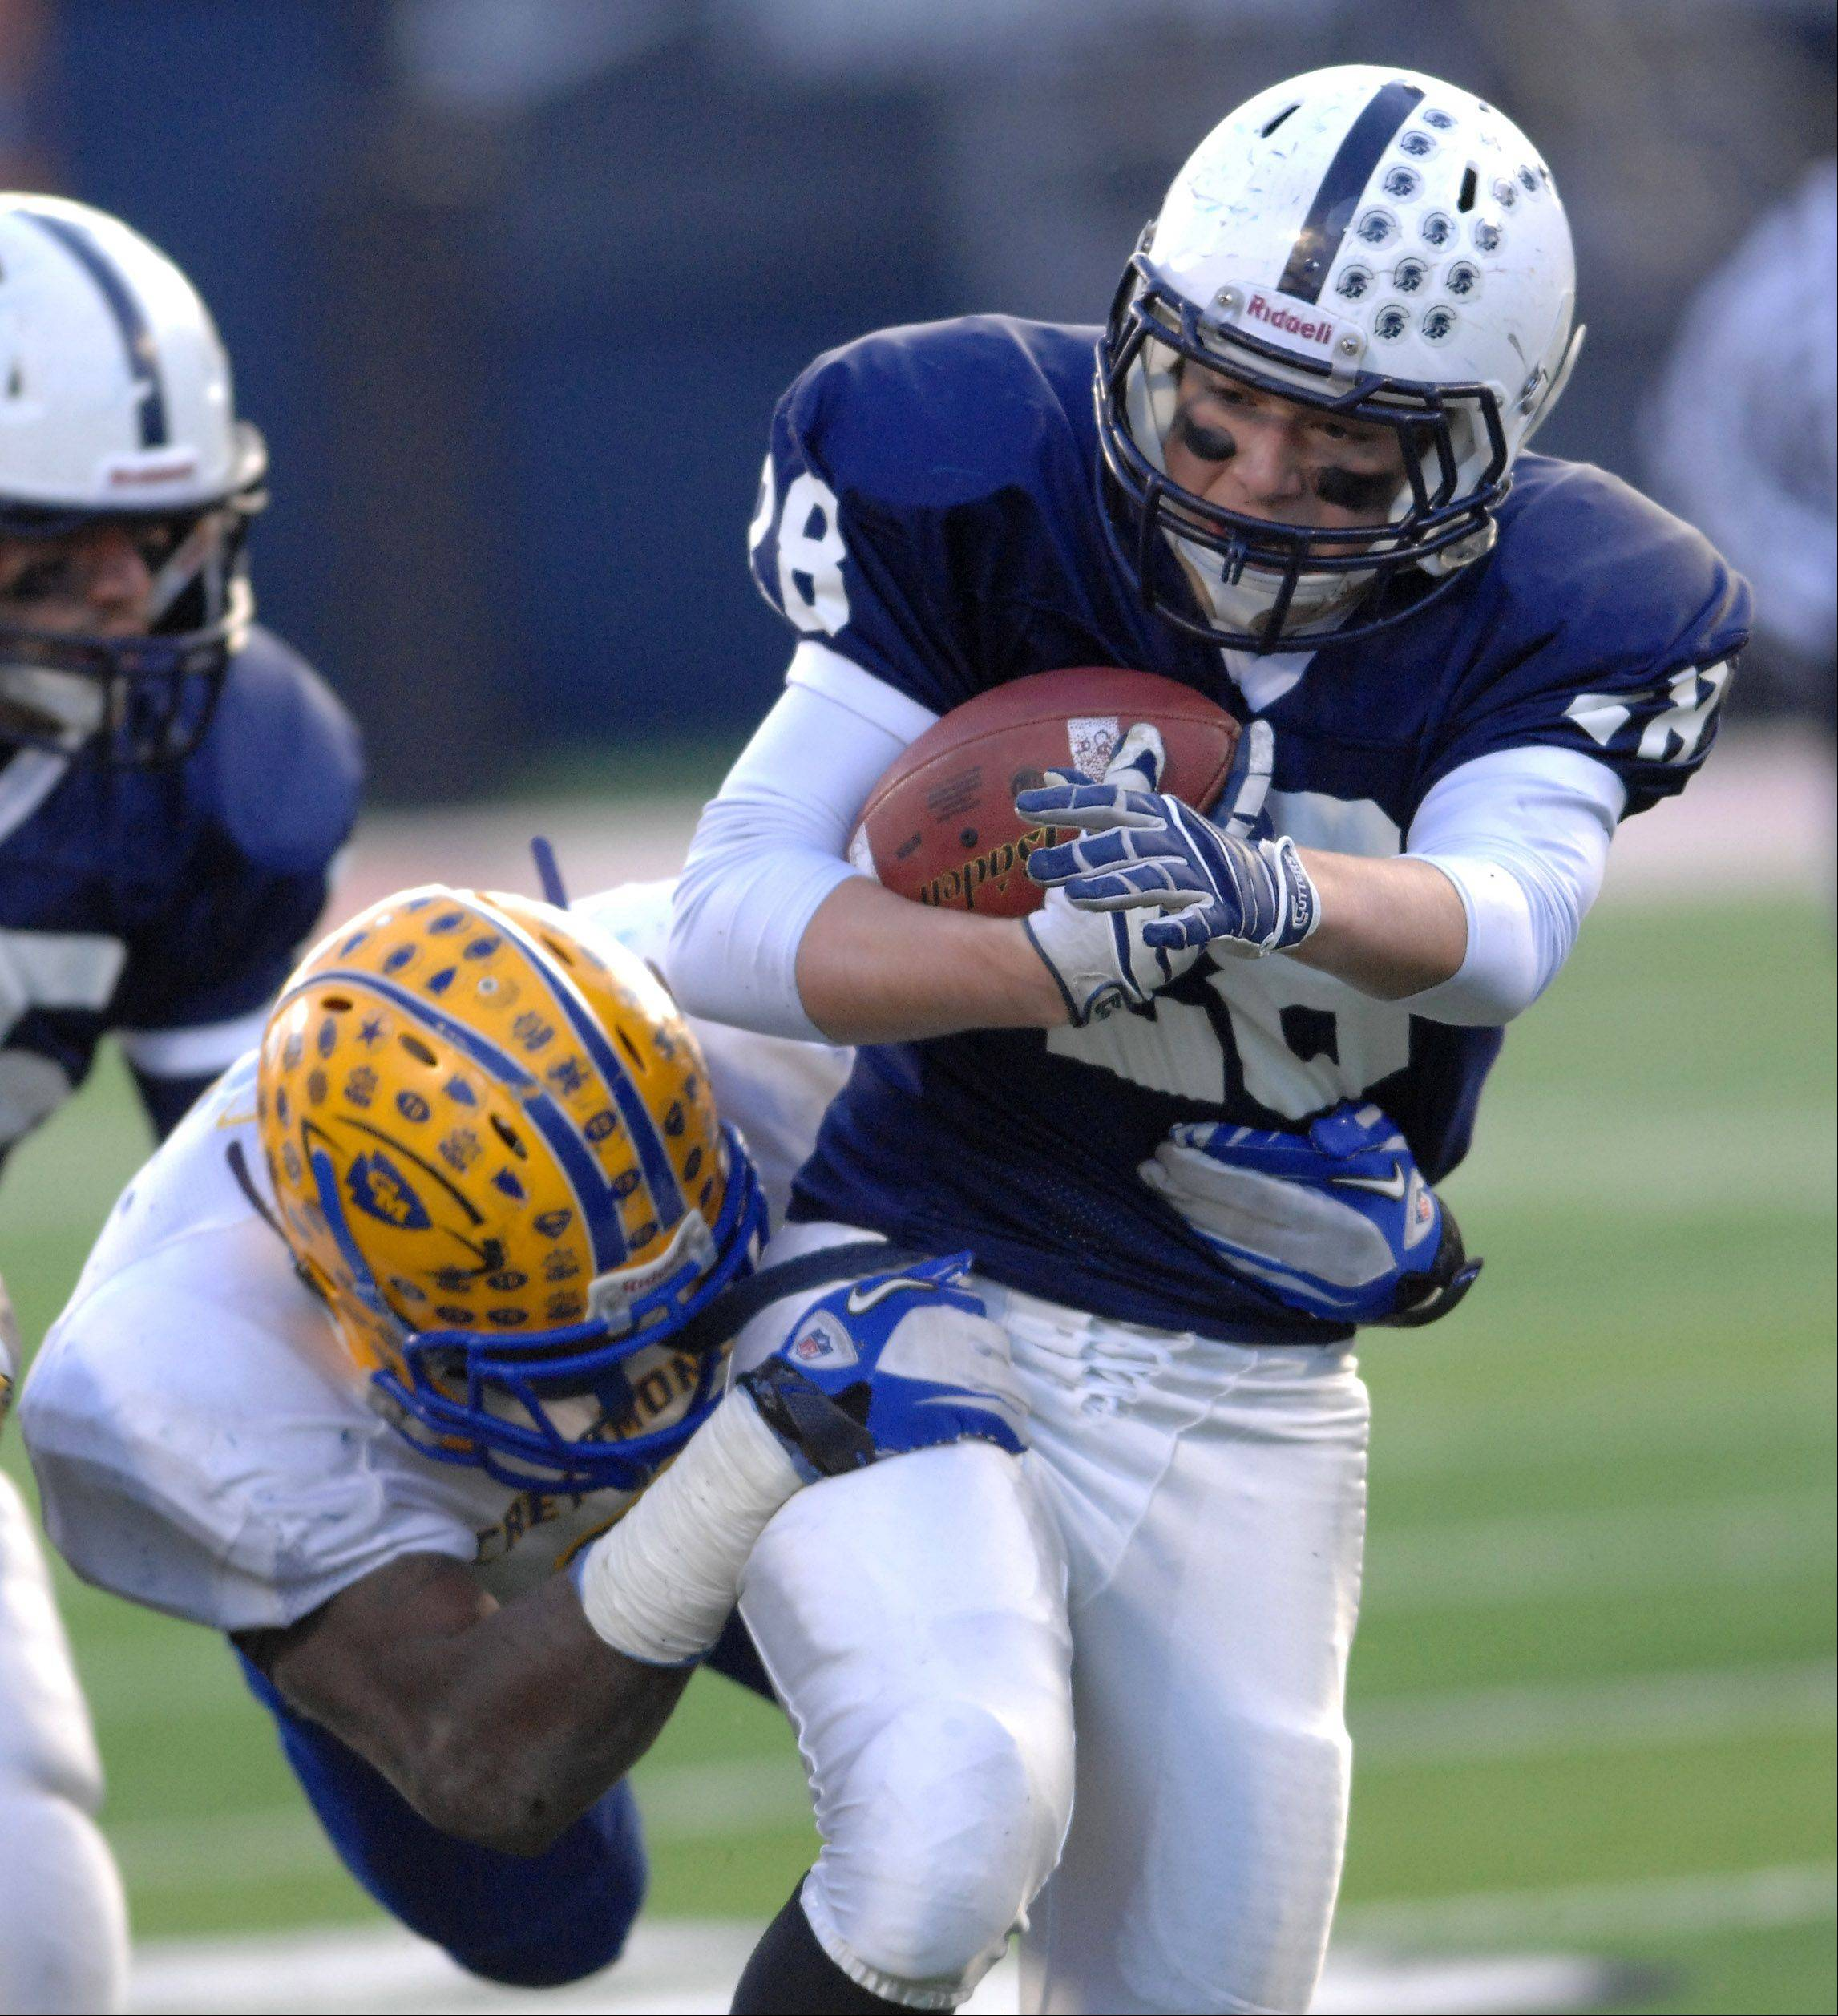 Cary-Grove's Joey Scott (28) breaks through a tackle during Saturday's Class 6A state title game at Memorial Stadium in Champaign.